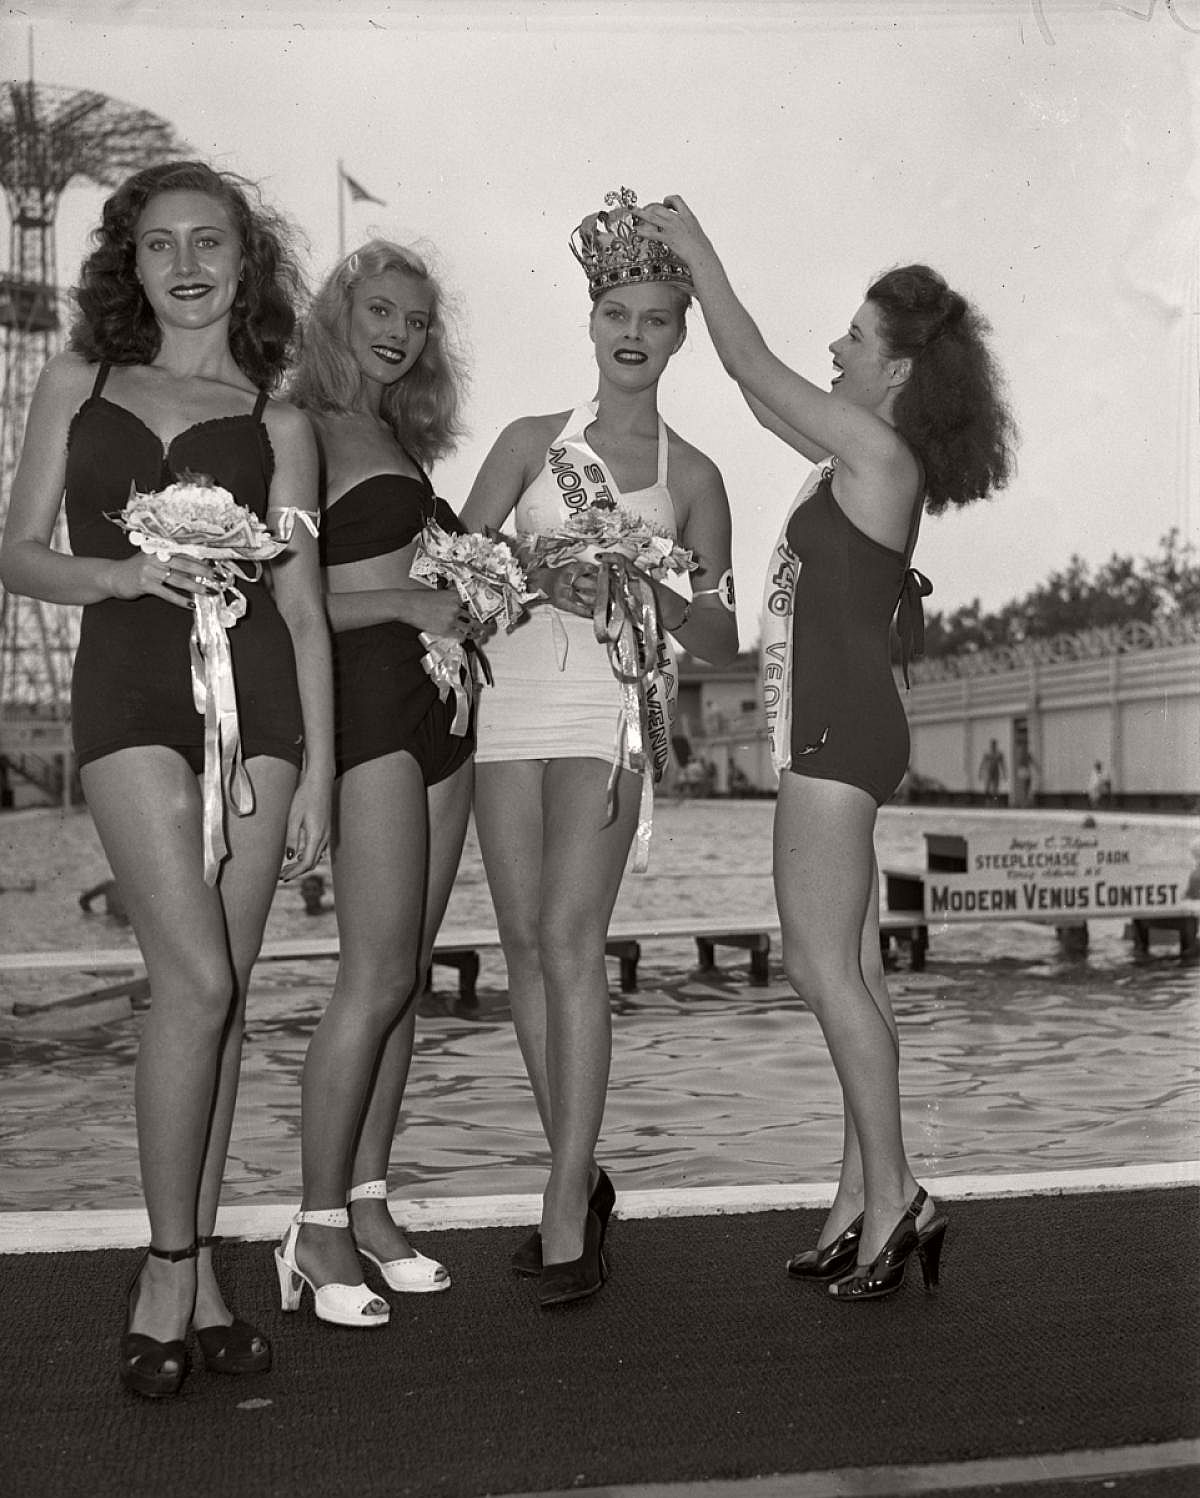 vintage-girls-in-swimsuits-new-york-city-1930s-1940s-08